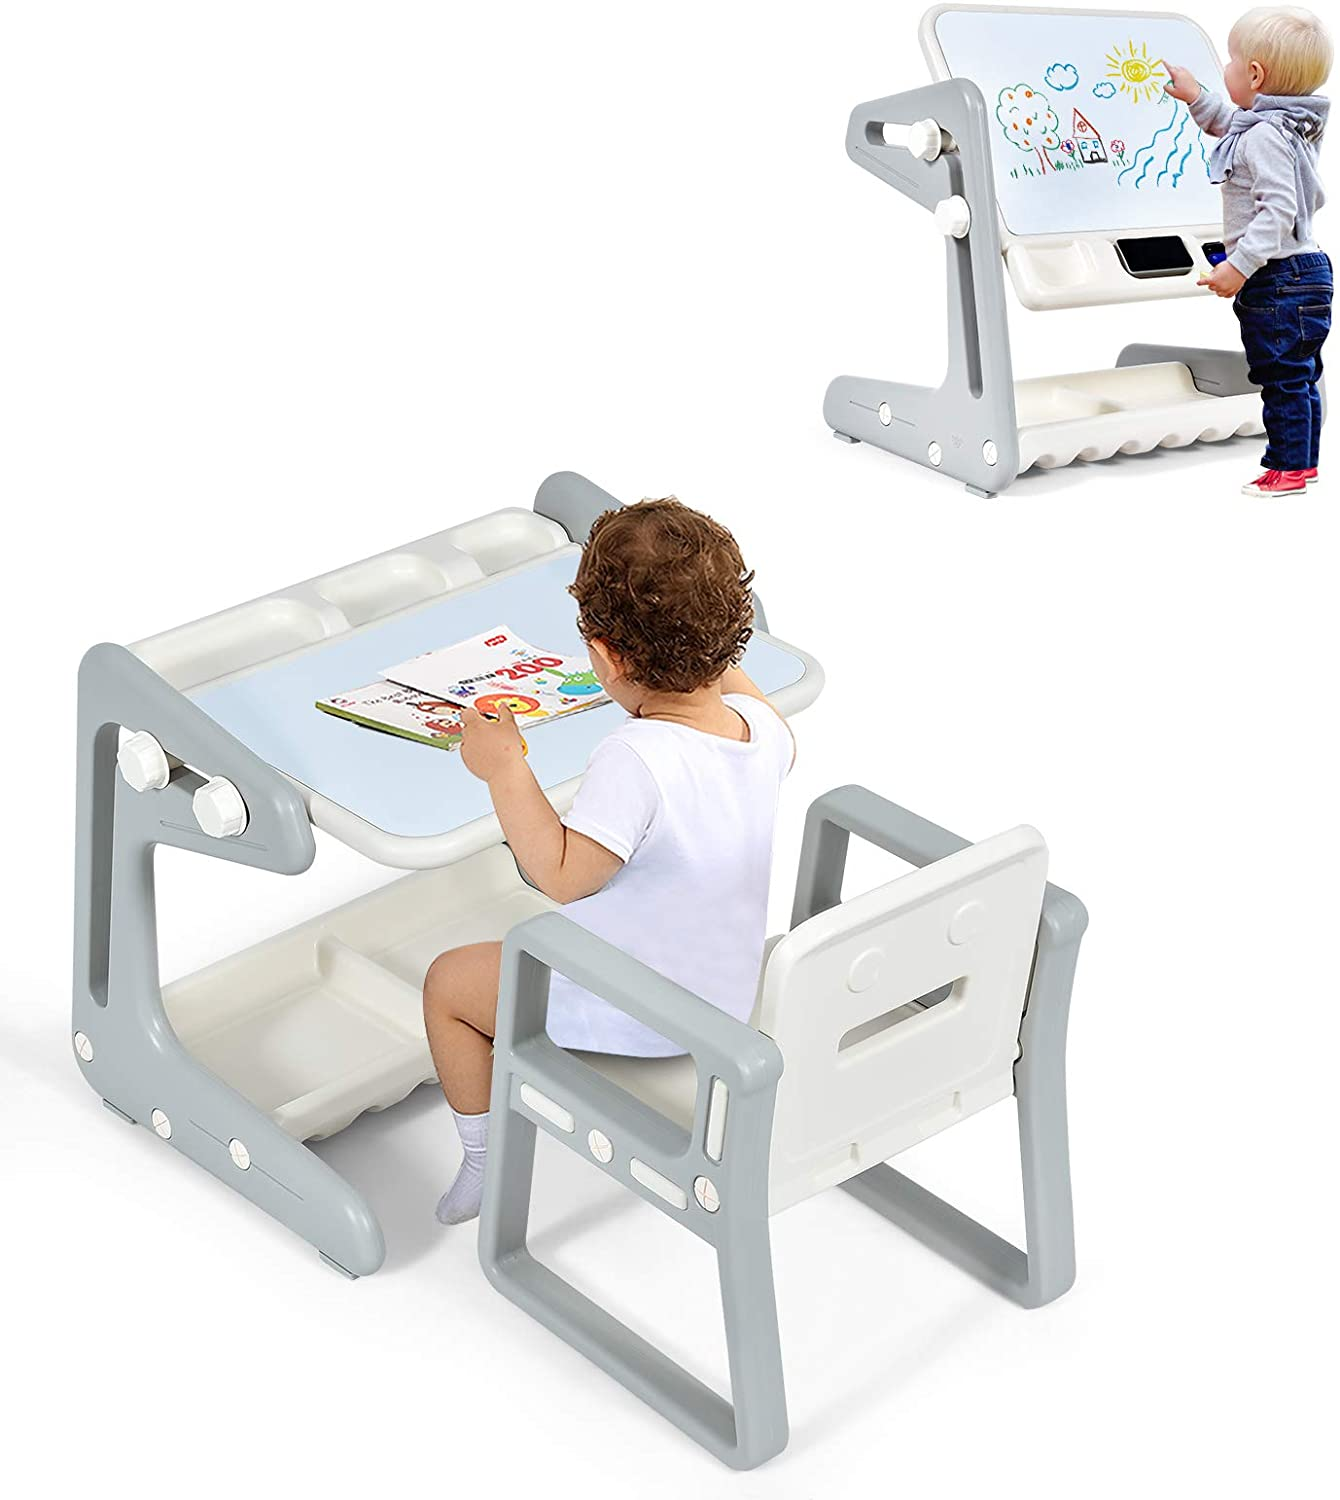 Costzon 2 in SALENEW very popular! 1 Kids Table w San Diego Mall Magnet Chair Adjustable Art Easel